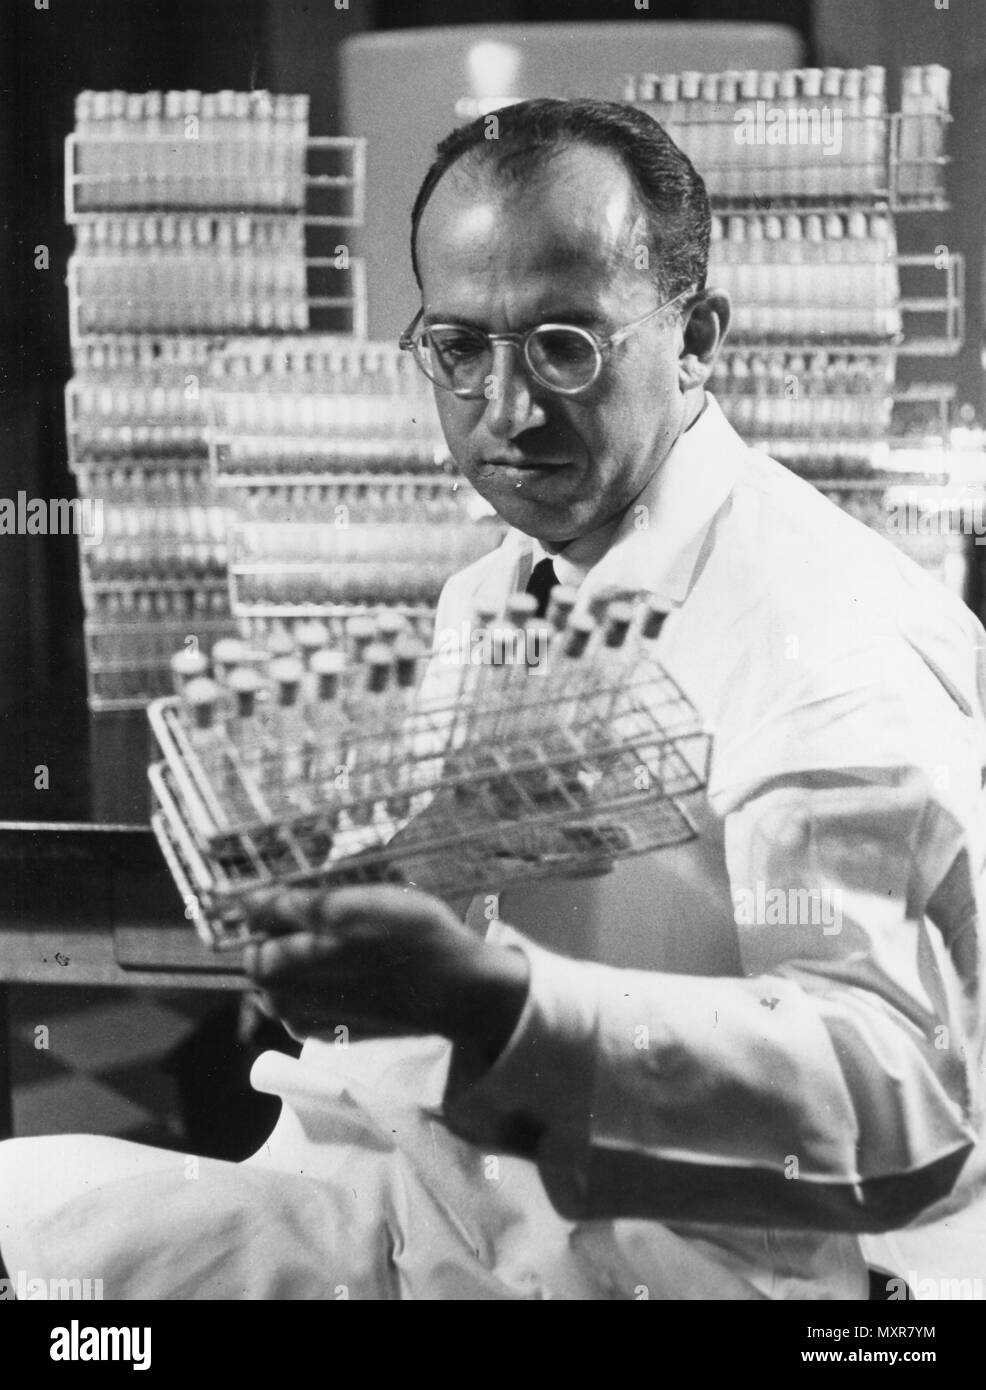 Dr. Jonas E. Salk, the discoverer of the polio vaccine, in his laboratory, 1955. - Stock Image